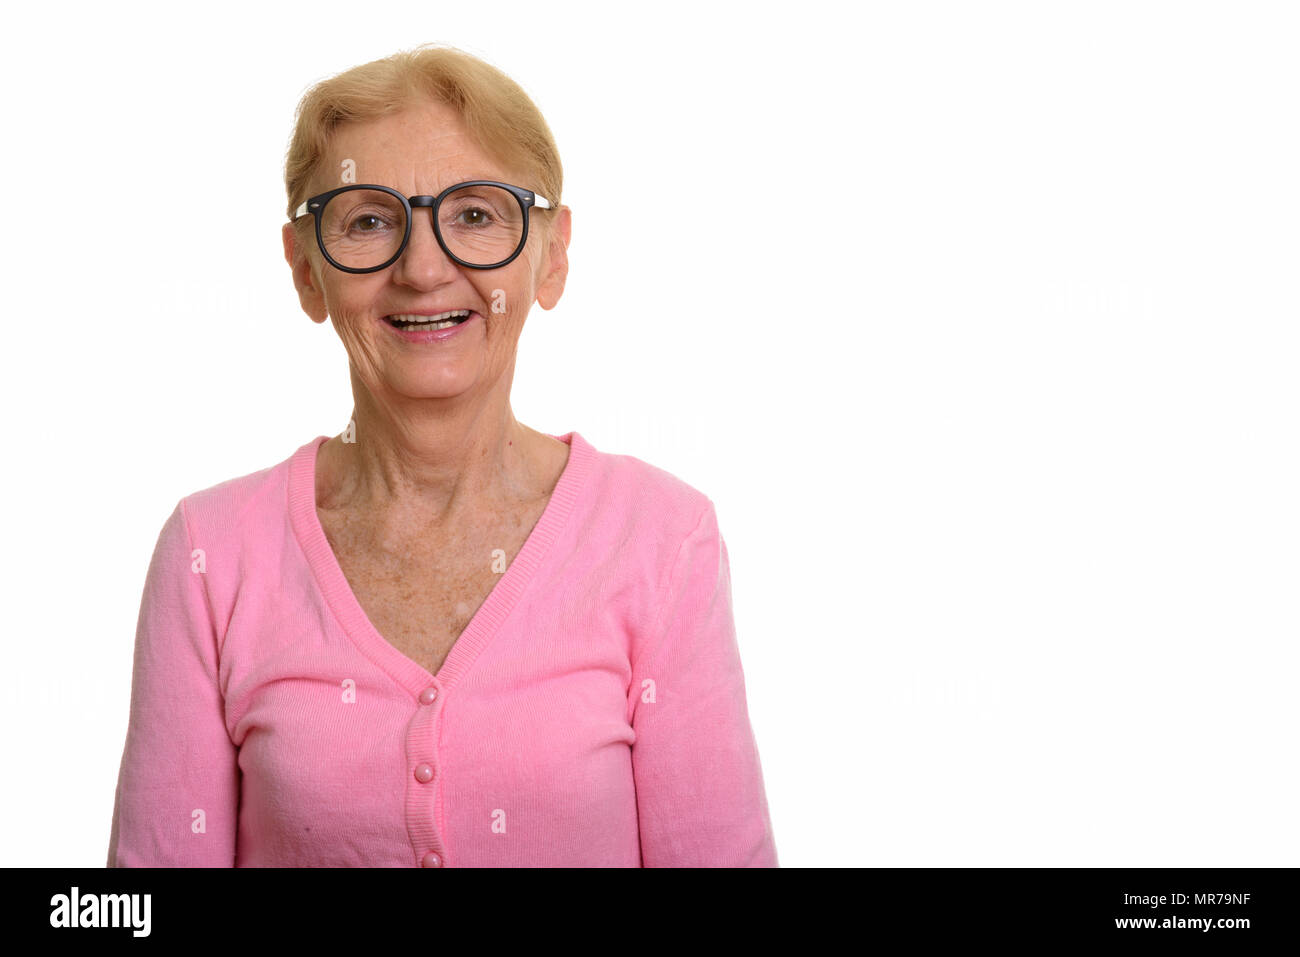 Happy senior nerd woman smiling and laughing while wearing geeky - Stock Image